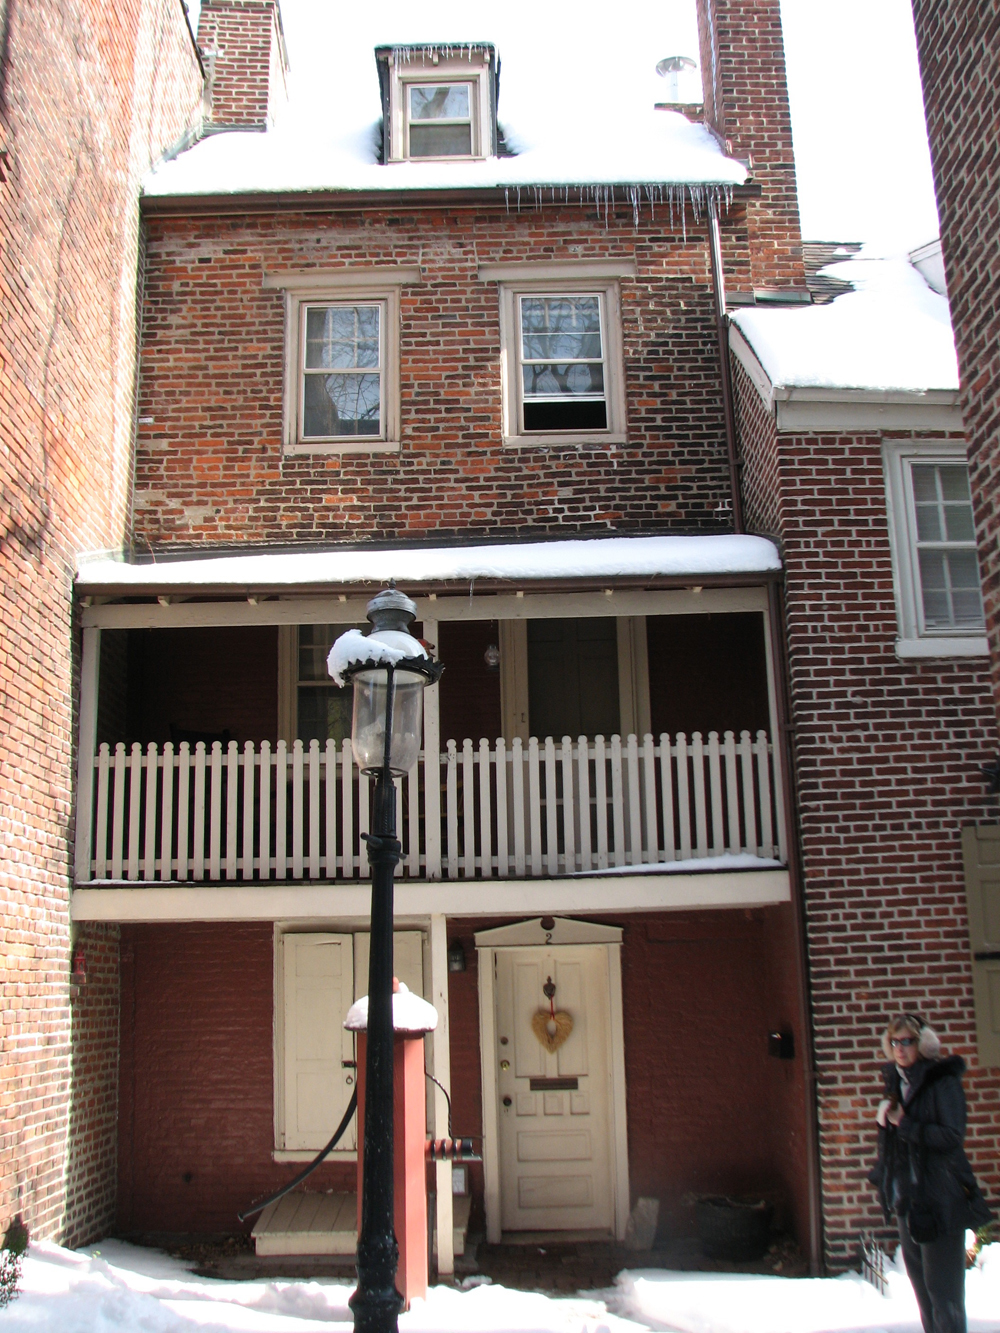 Bladen's Court, a courtyard off Elfreth's Alley, once contained the public privy.